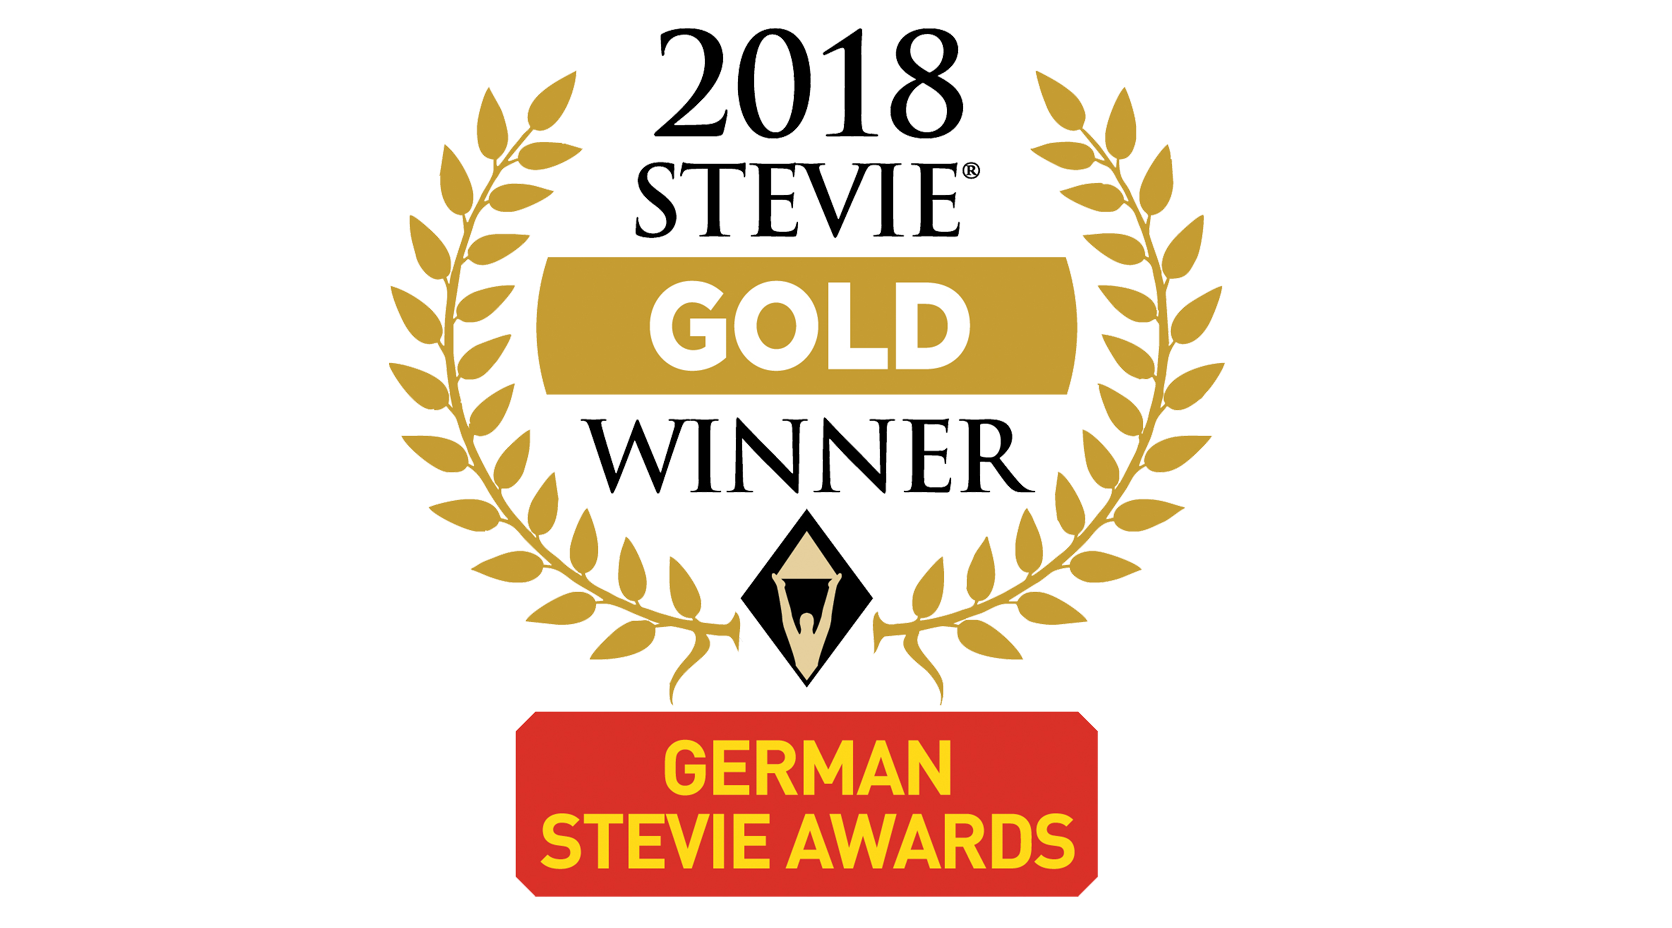 EnBW - GERMAN STEVIE AWARD WINNER 2018